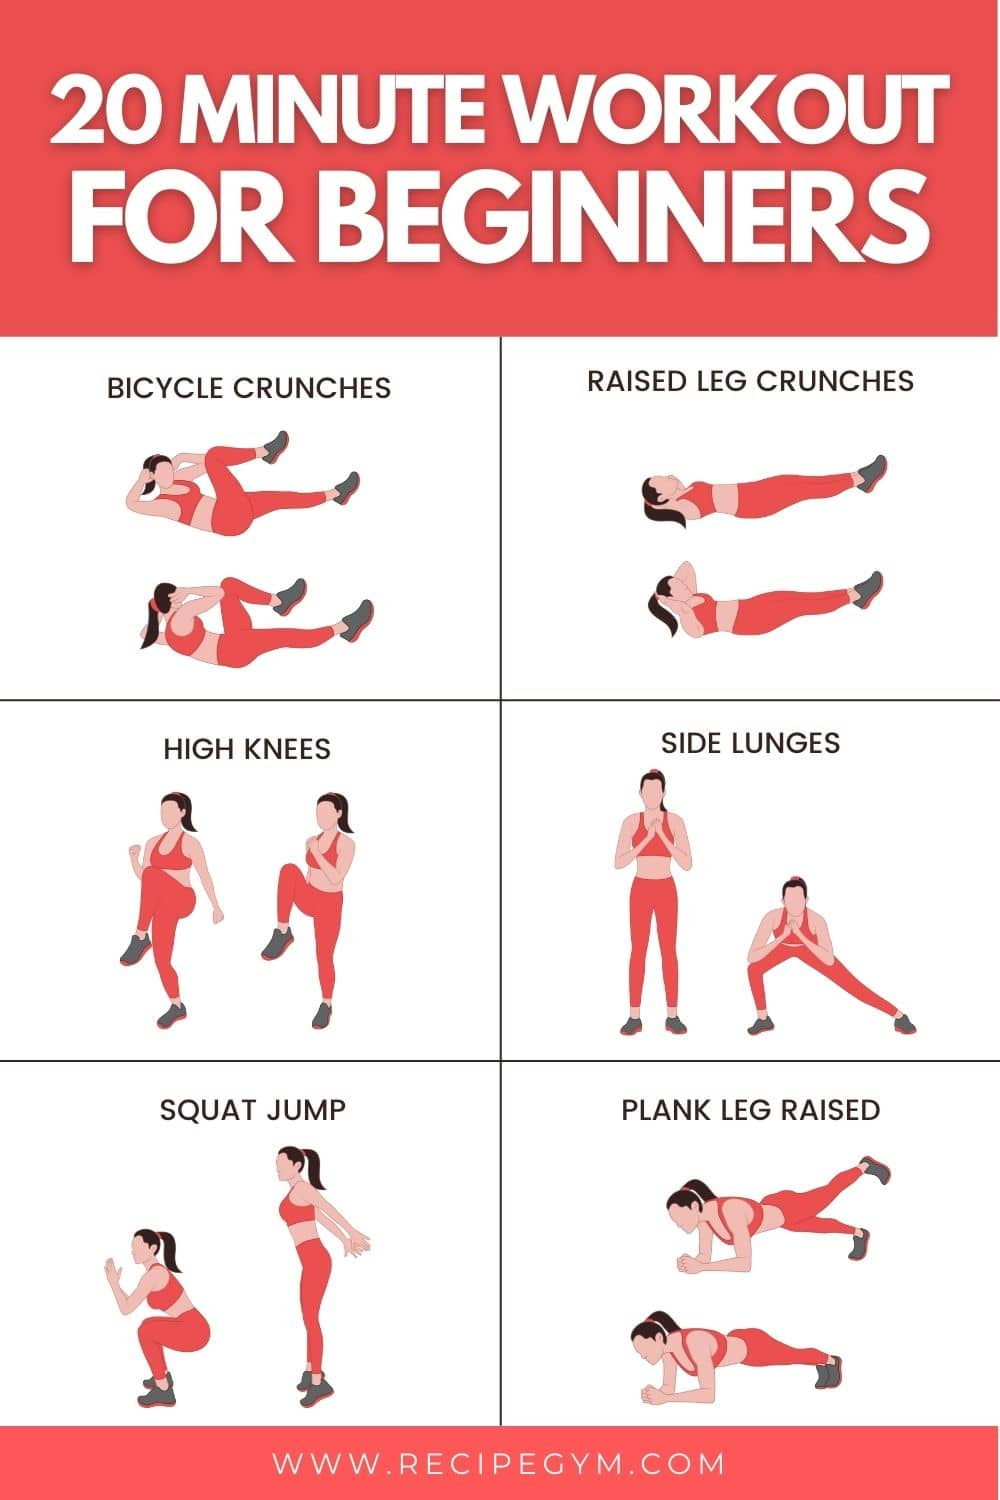 20 minute workout for beginners